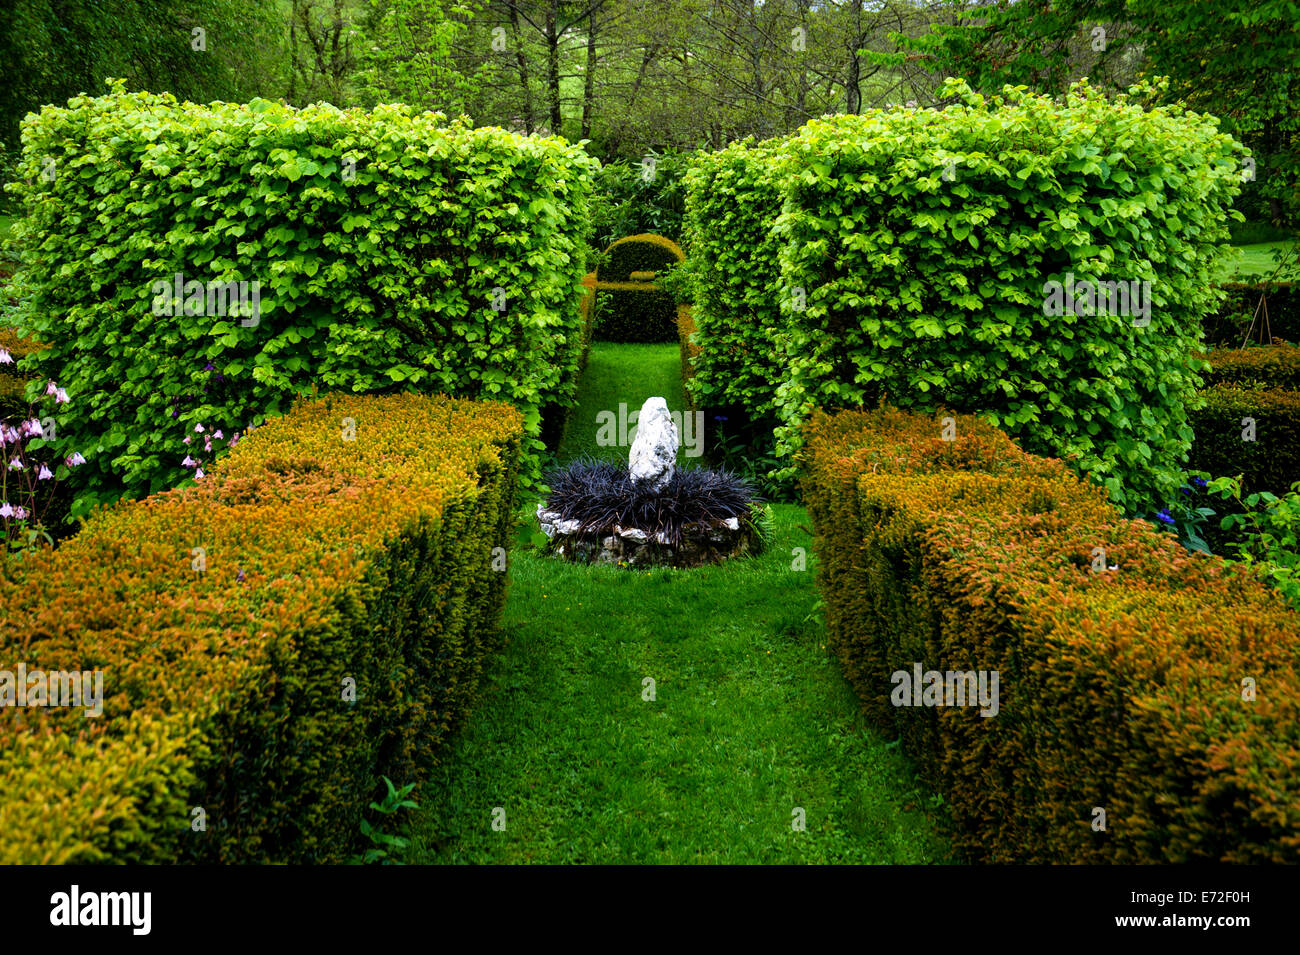 The Lower Garden with formal hedging, Cae Hir Garden,Ceredigion,Wales - Stock Image